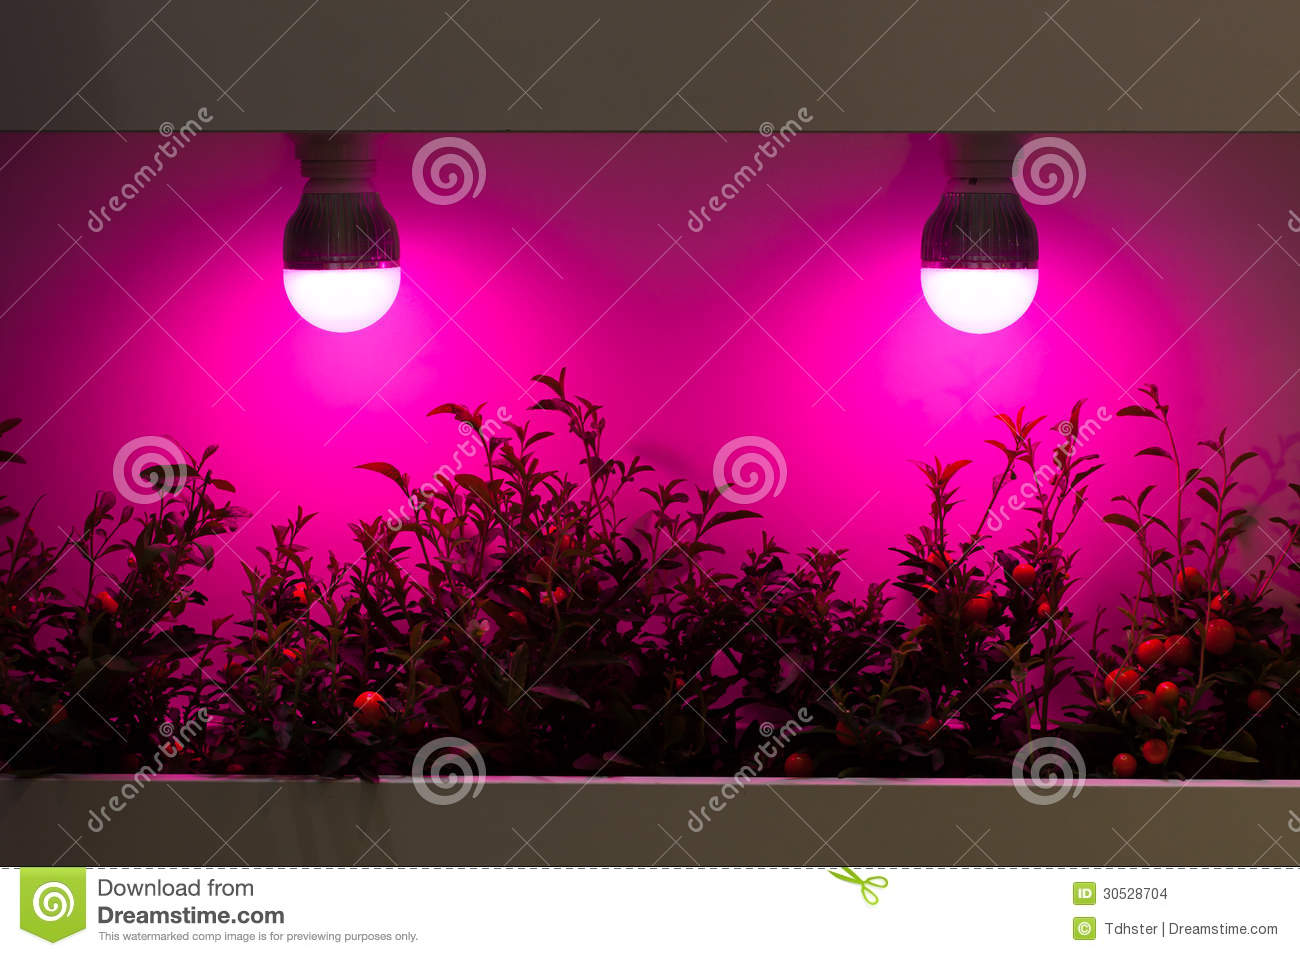 heating plants by lamps stock images image 30528704. Black Bedroom Furniture Sets. Home Design Ideas